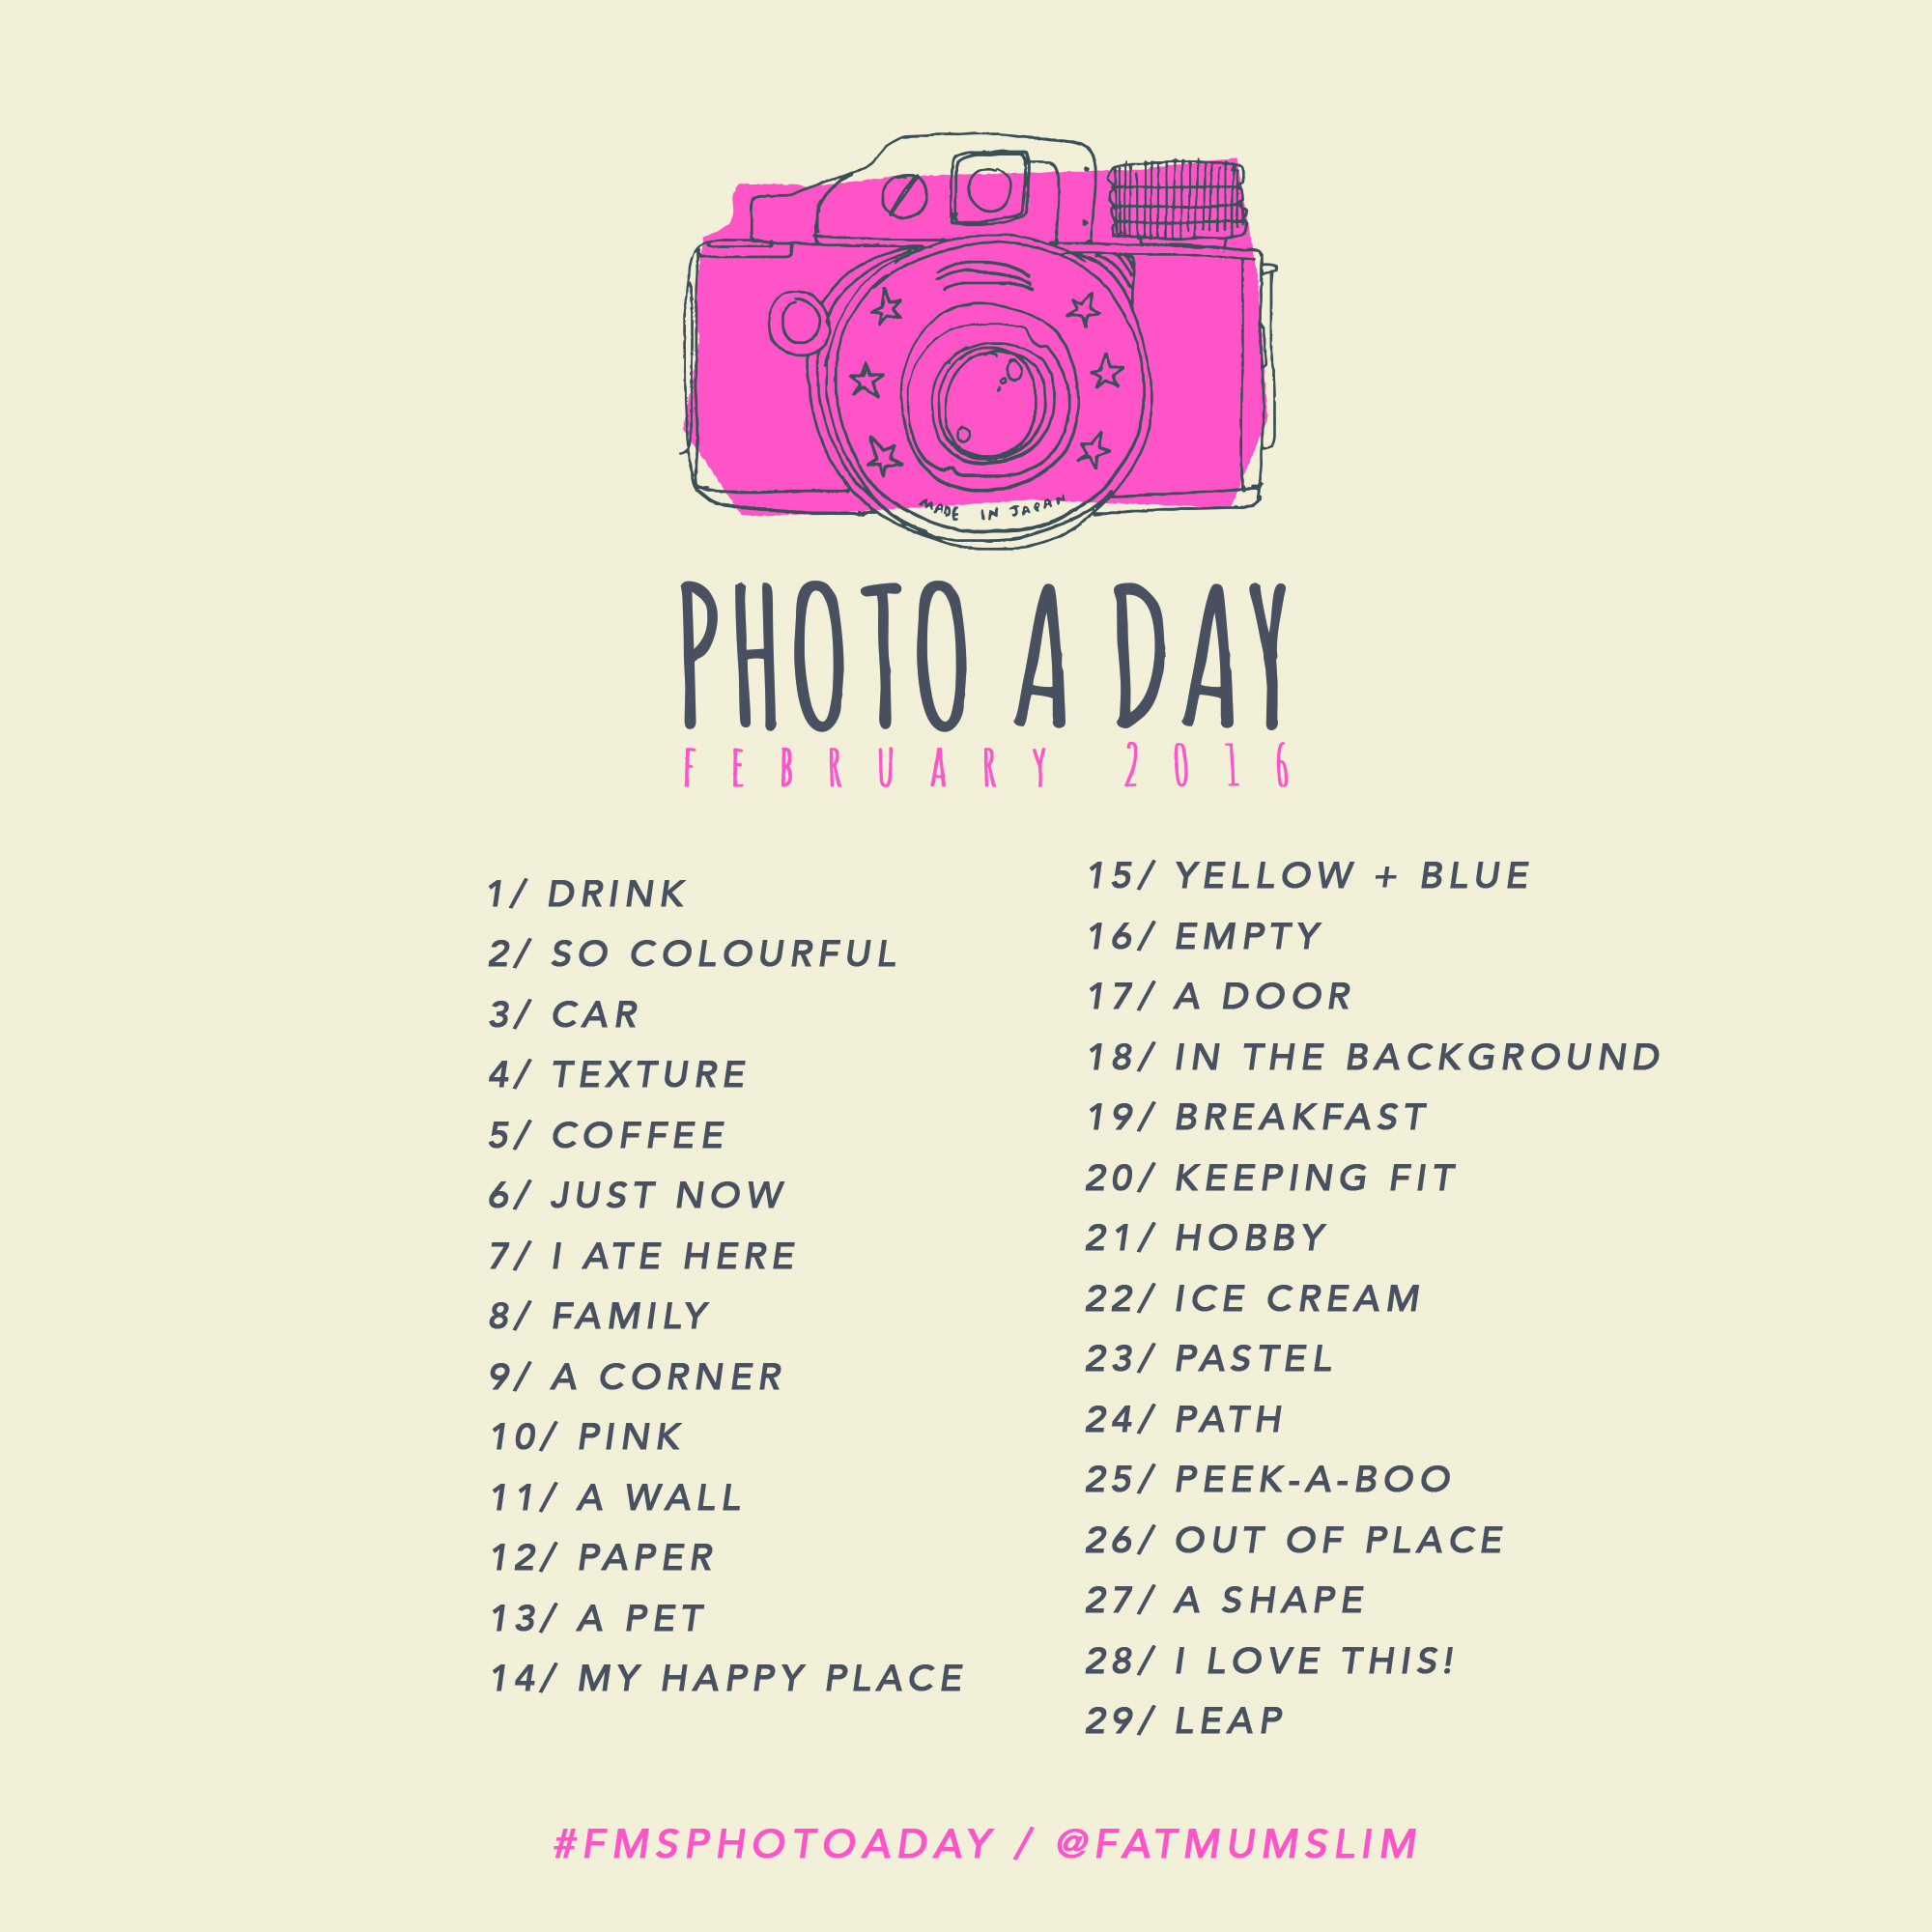 PHOTO A DAY - FEB 16